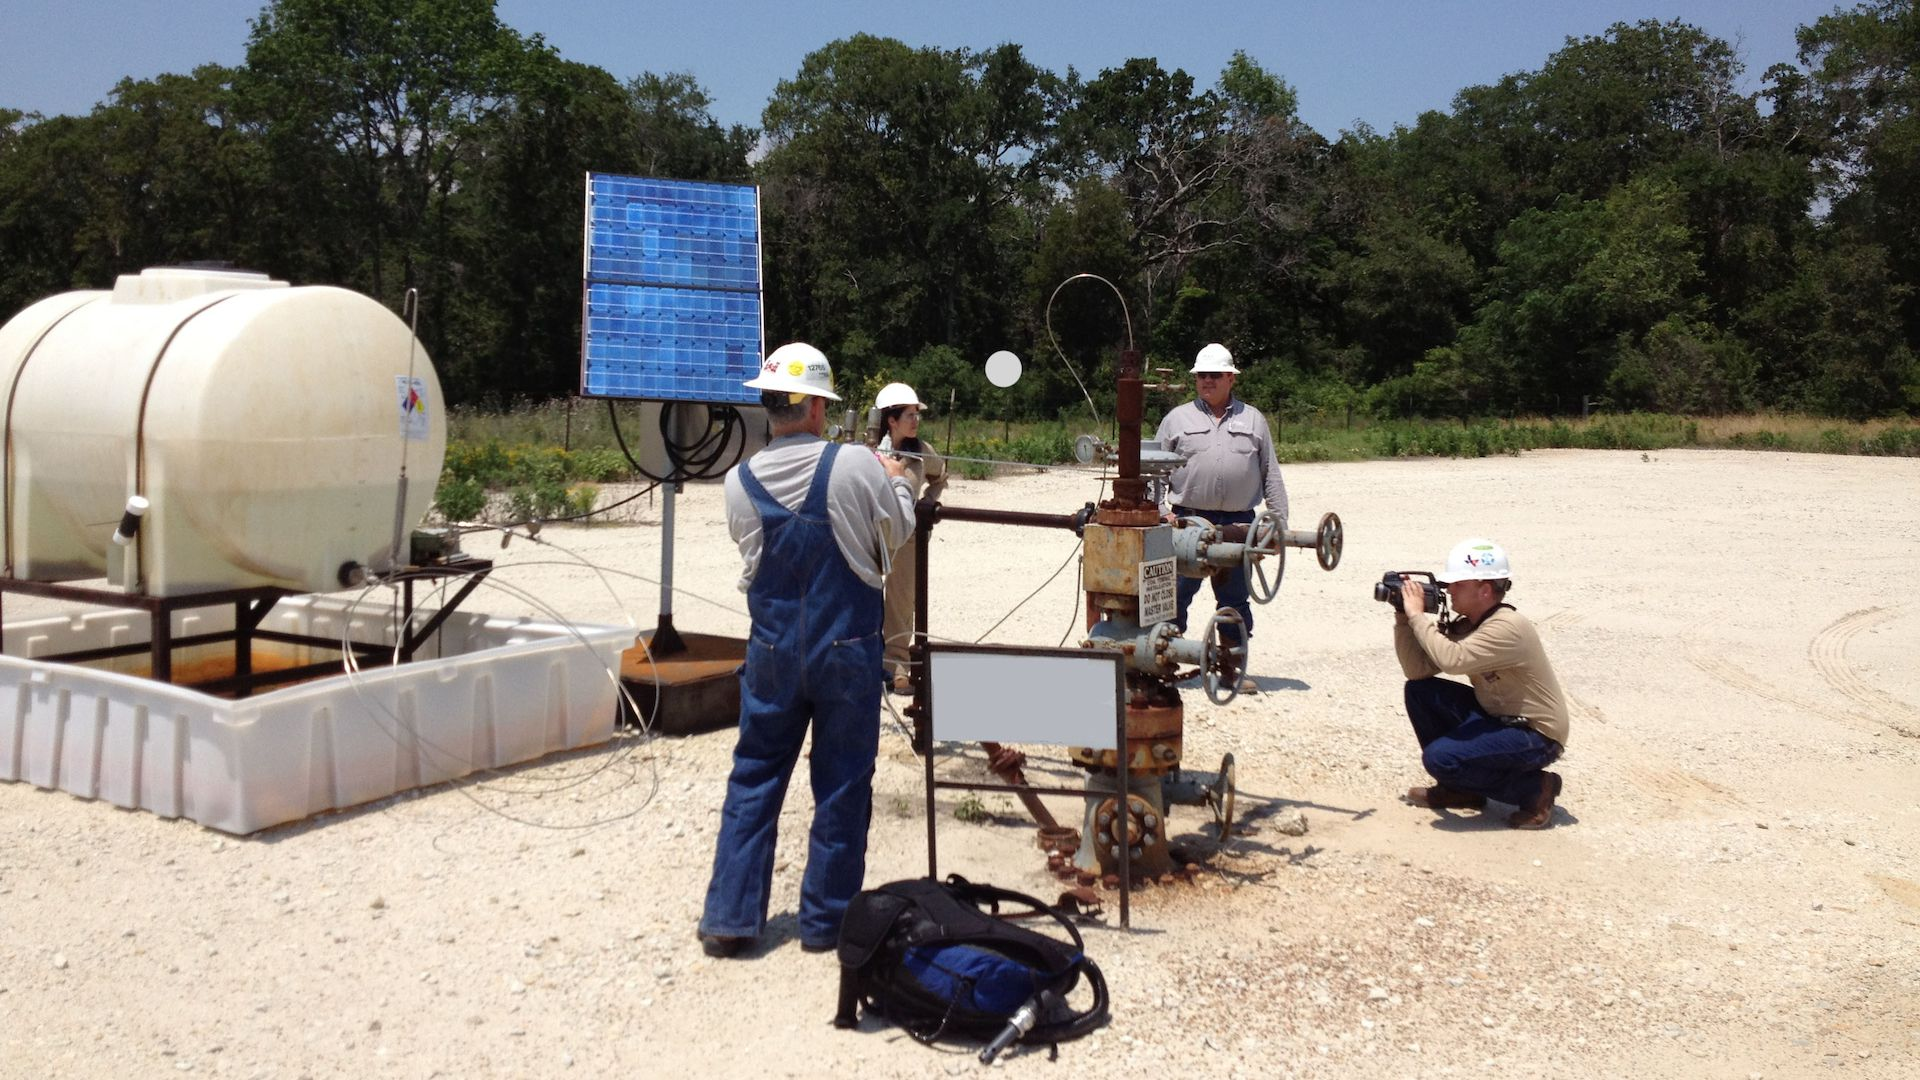 Researchers examine methane emissions from an oil or gas facility.